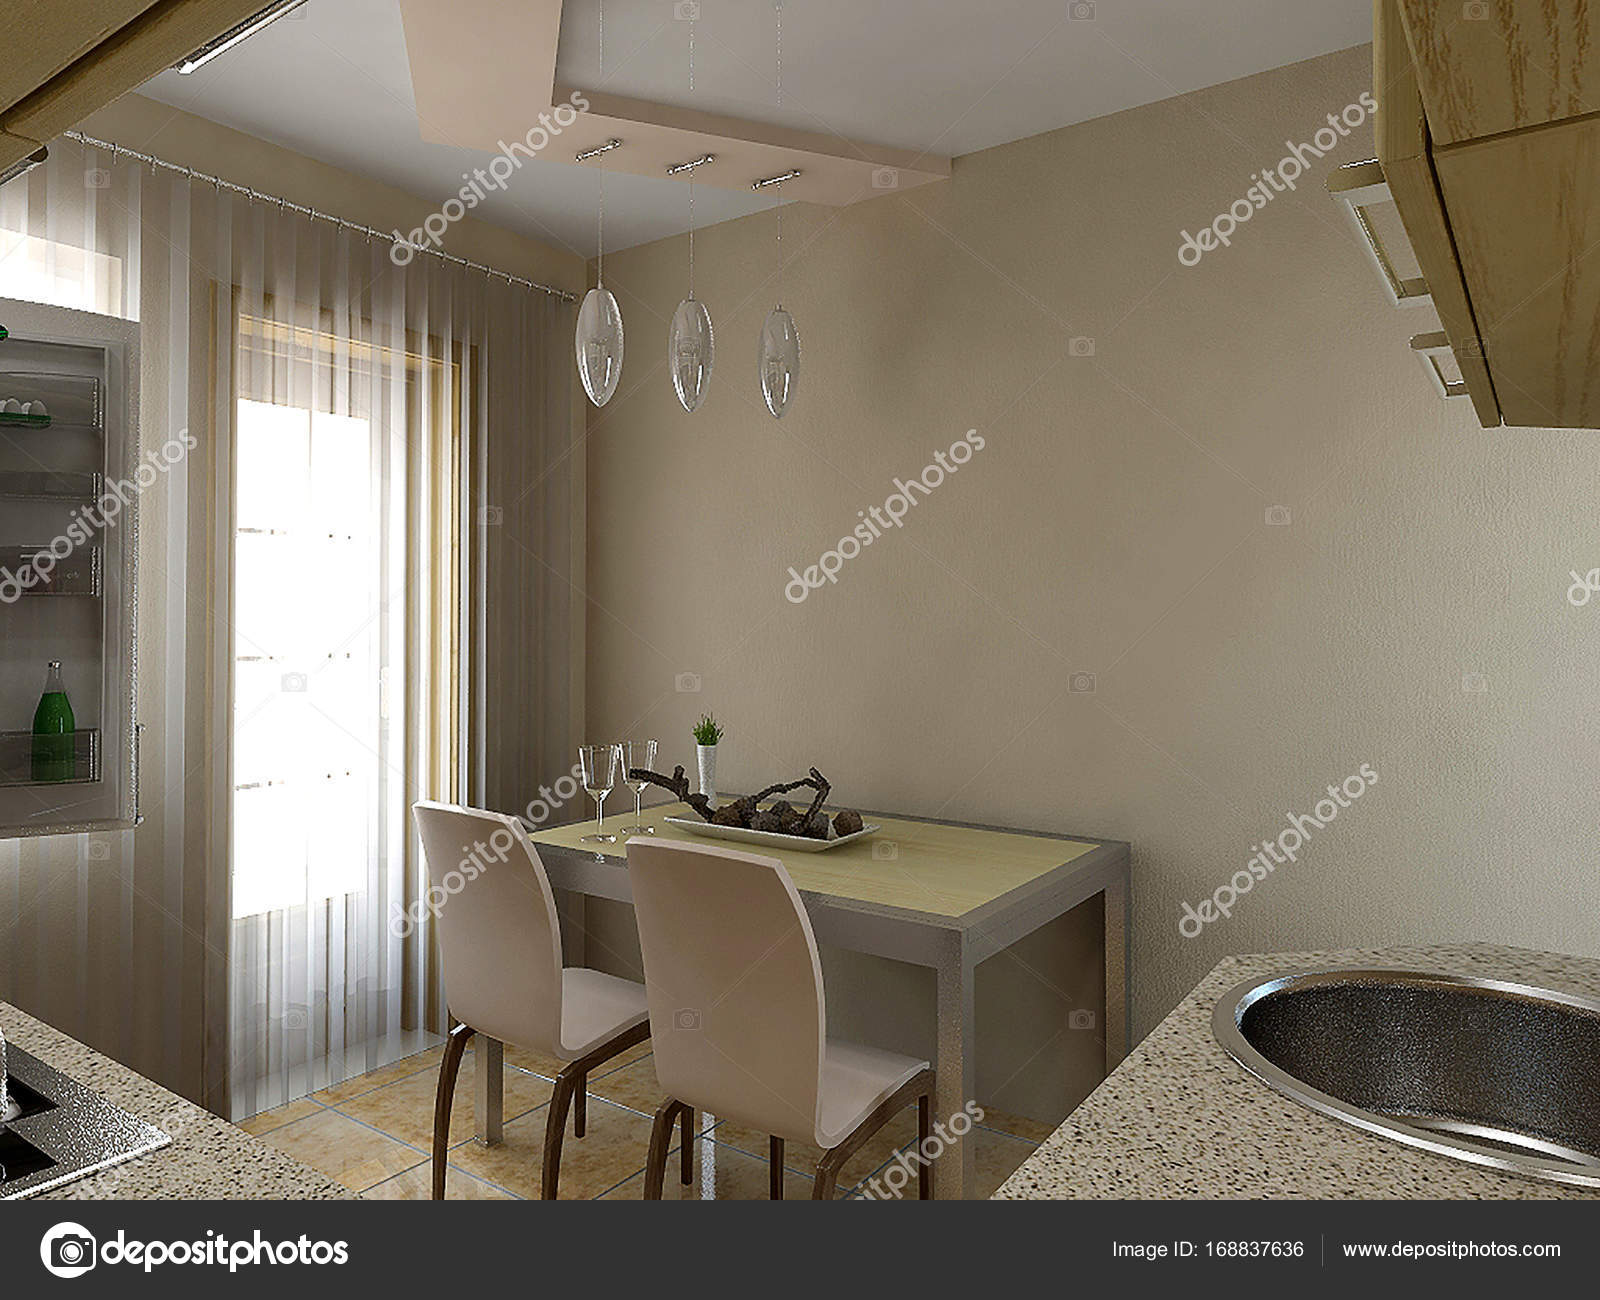 Küche Interieur Ideen, 3d render — Stockfoto © ThreeDiCube #168837636